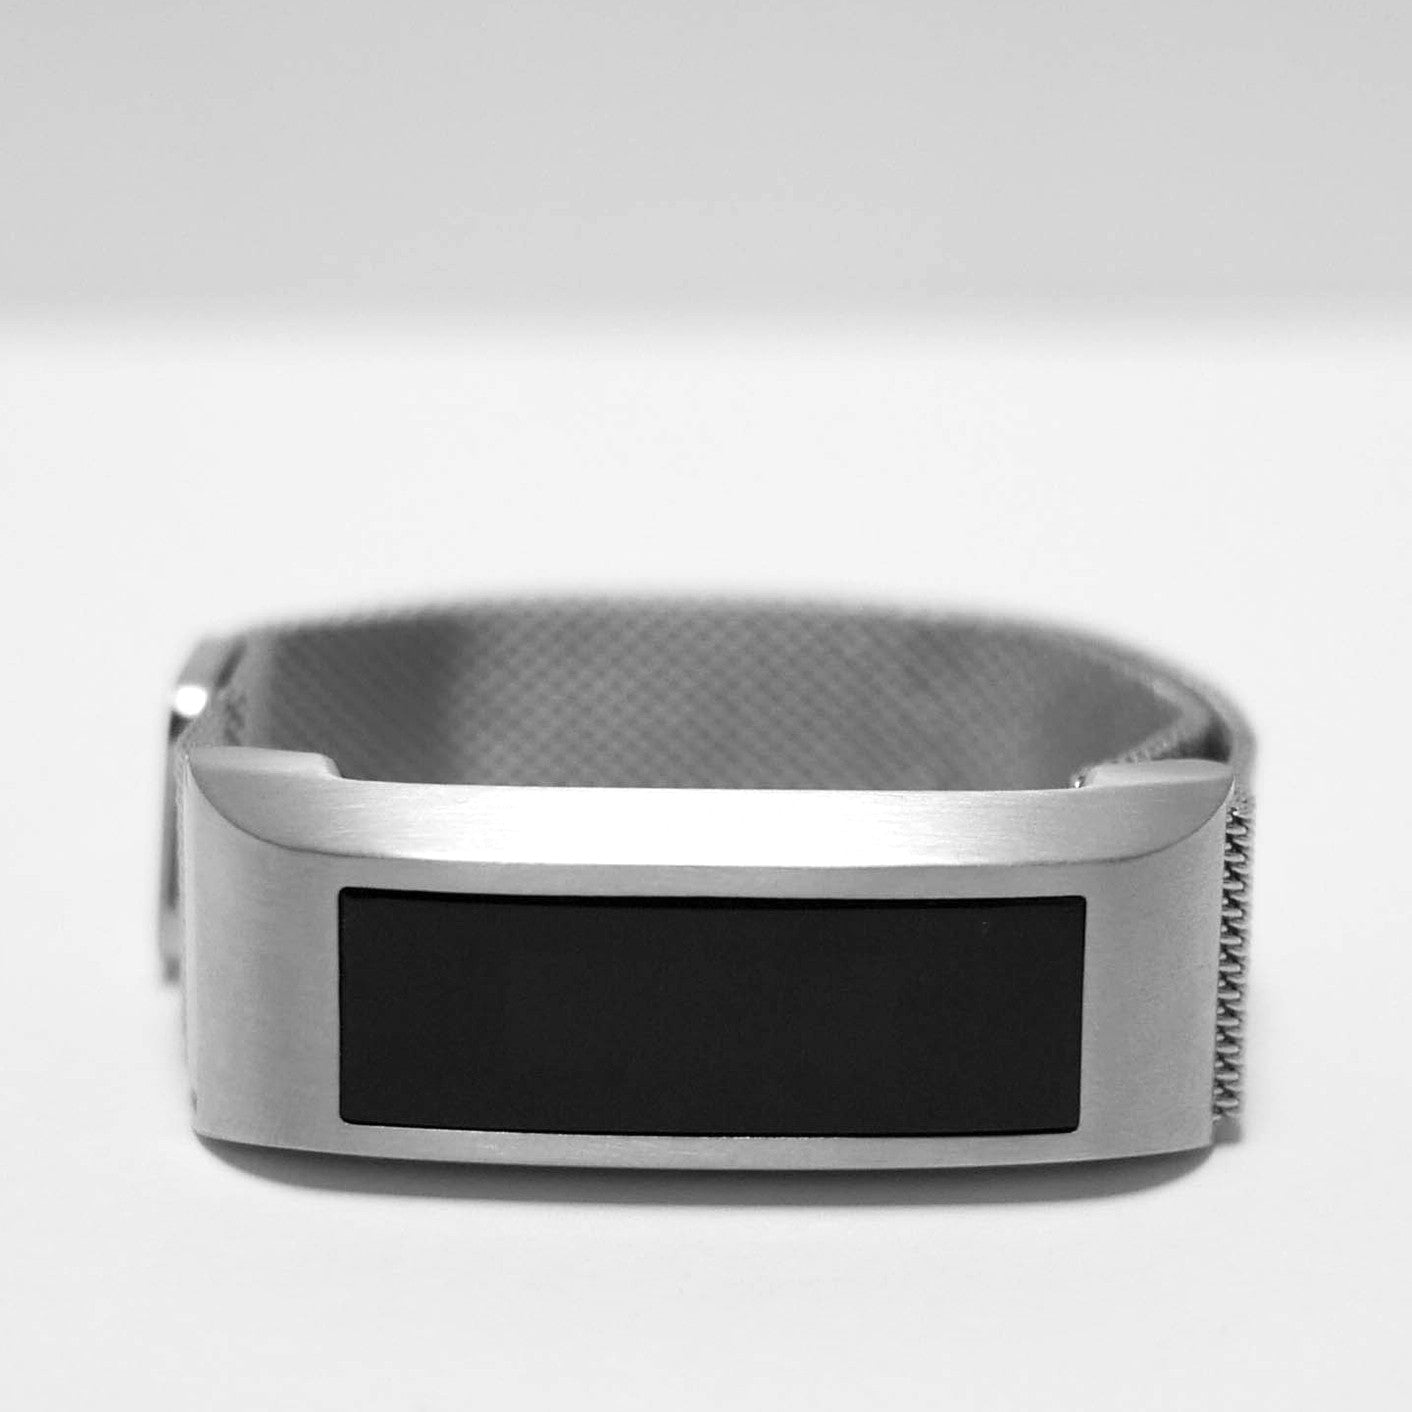 morstep fitbit alta bracelet silver metal jewelry accessories